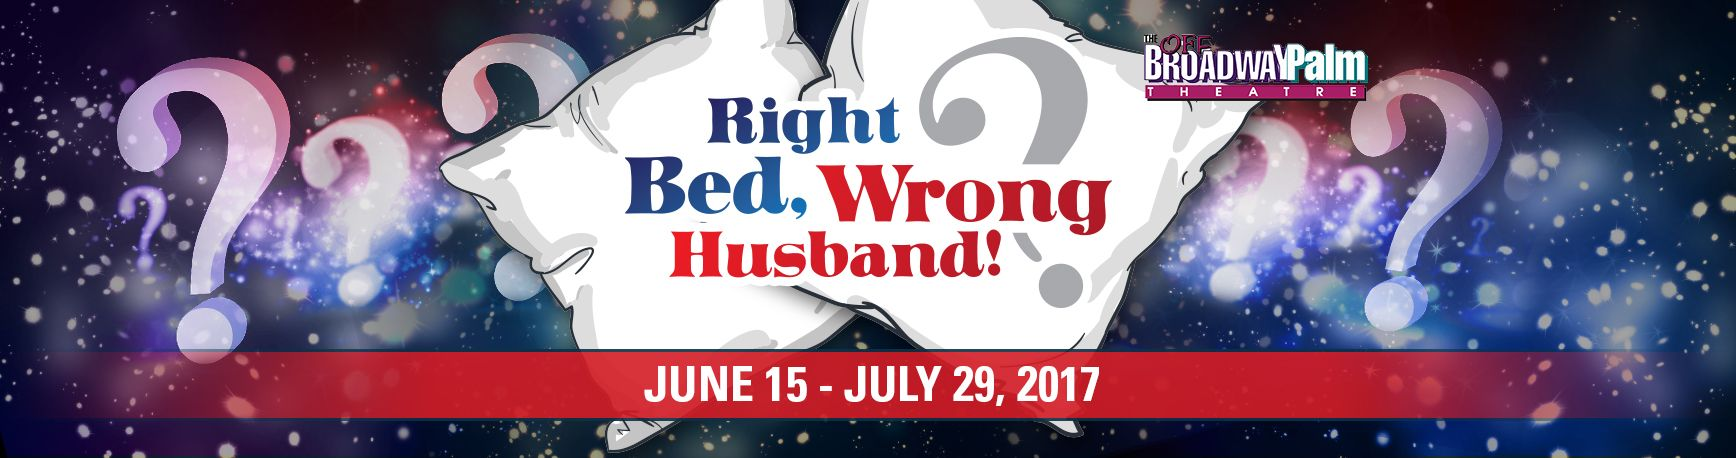 'Right Bed, Wrong Husband' play dates, times and ticket info